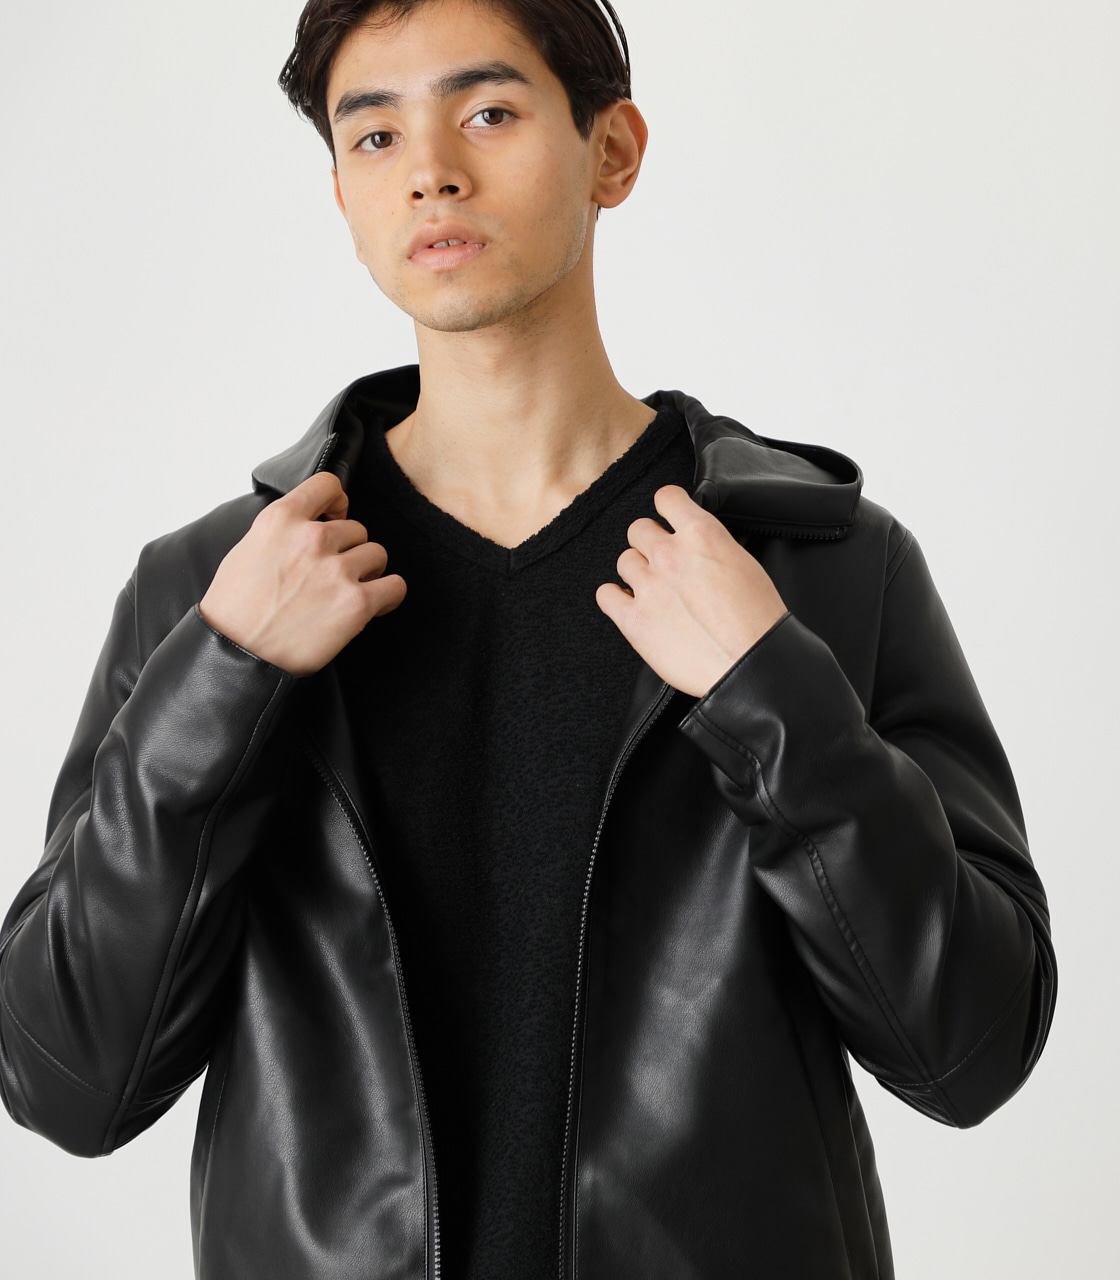 ECO LEATHER HOODED/エコレザーフーデッド 詳細画像 BLK 3